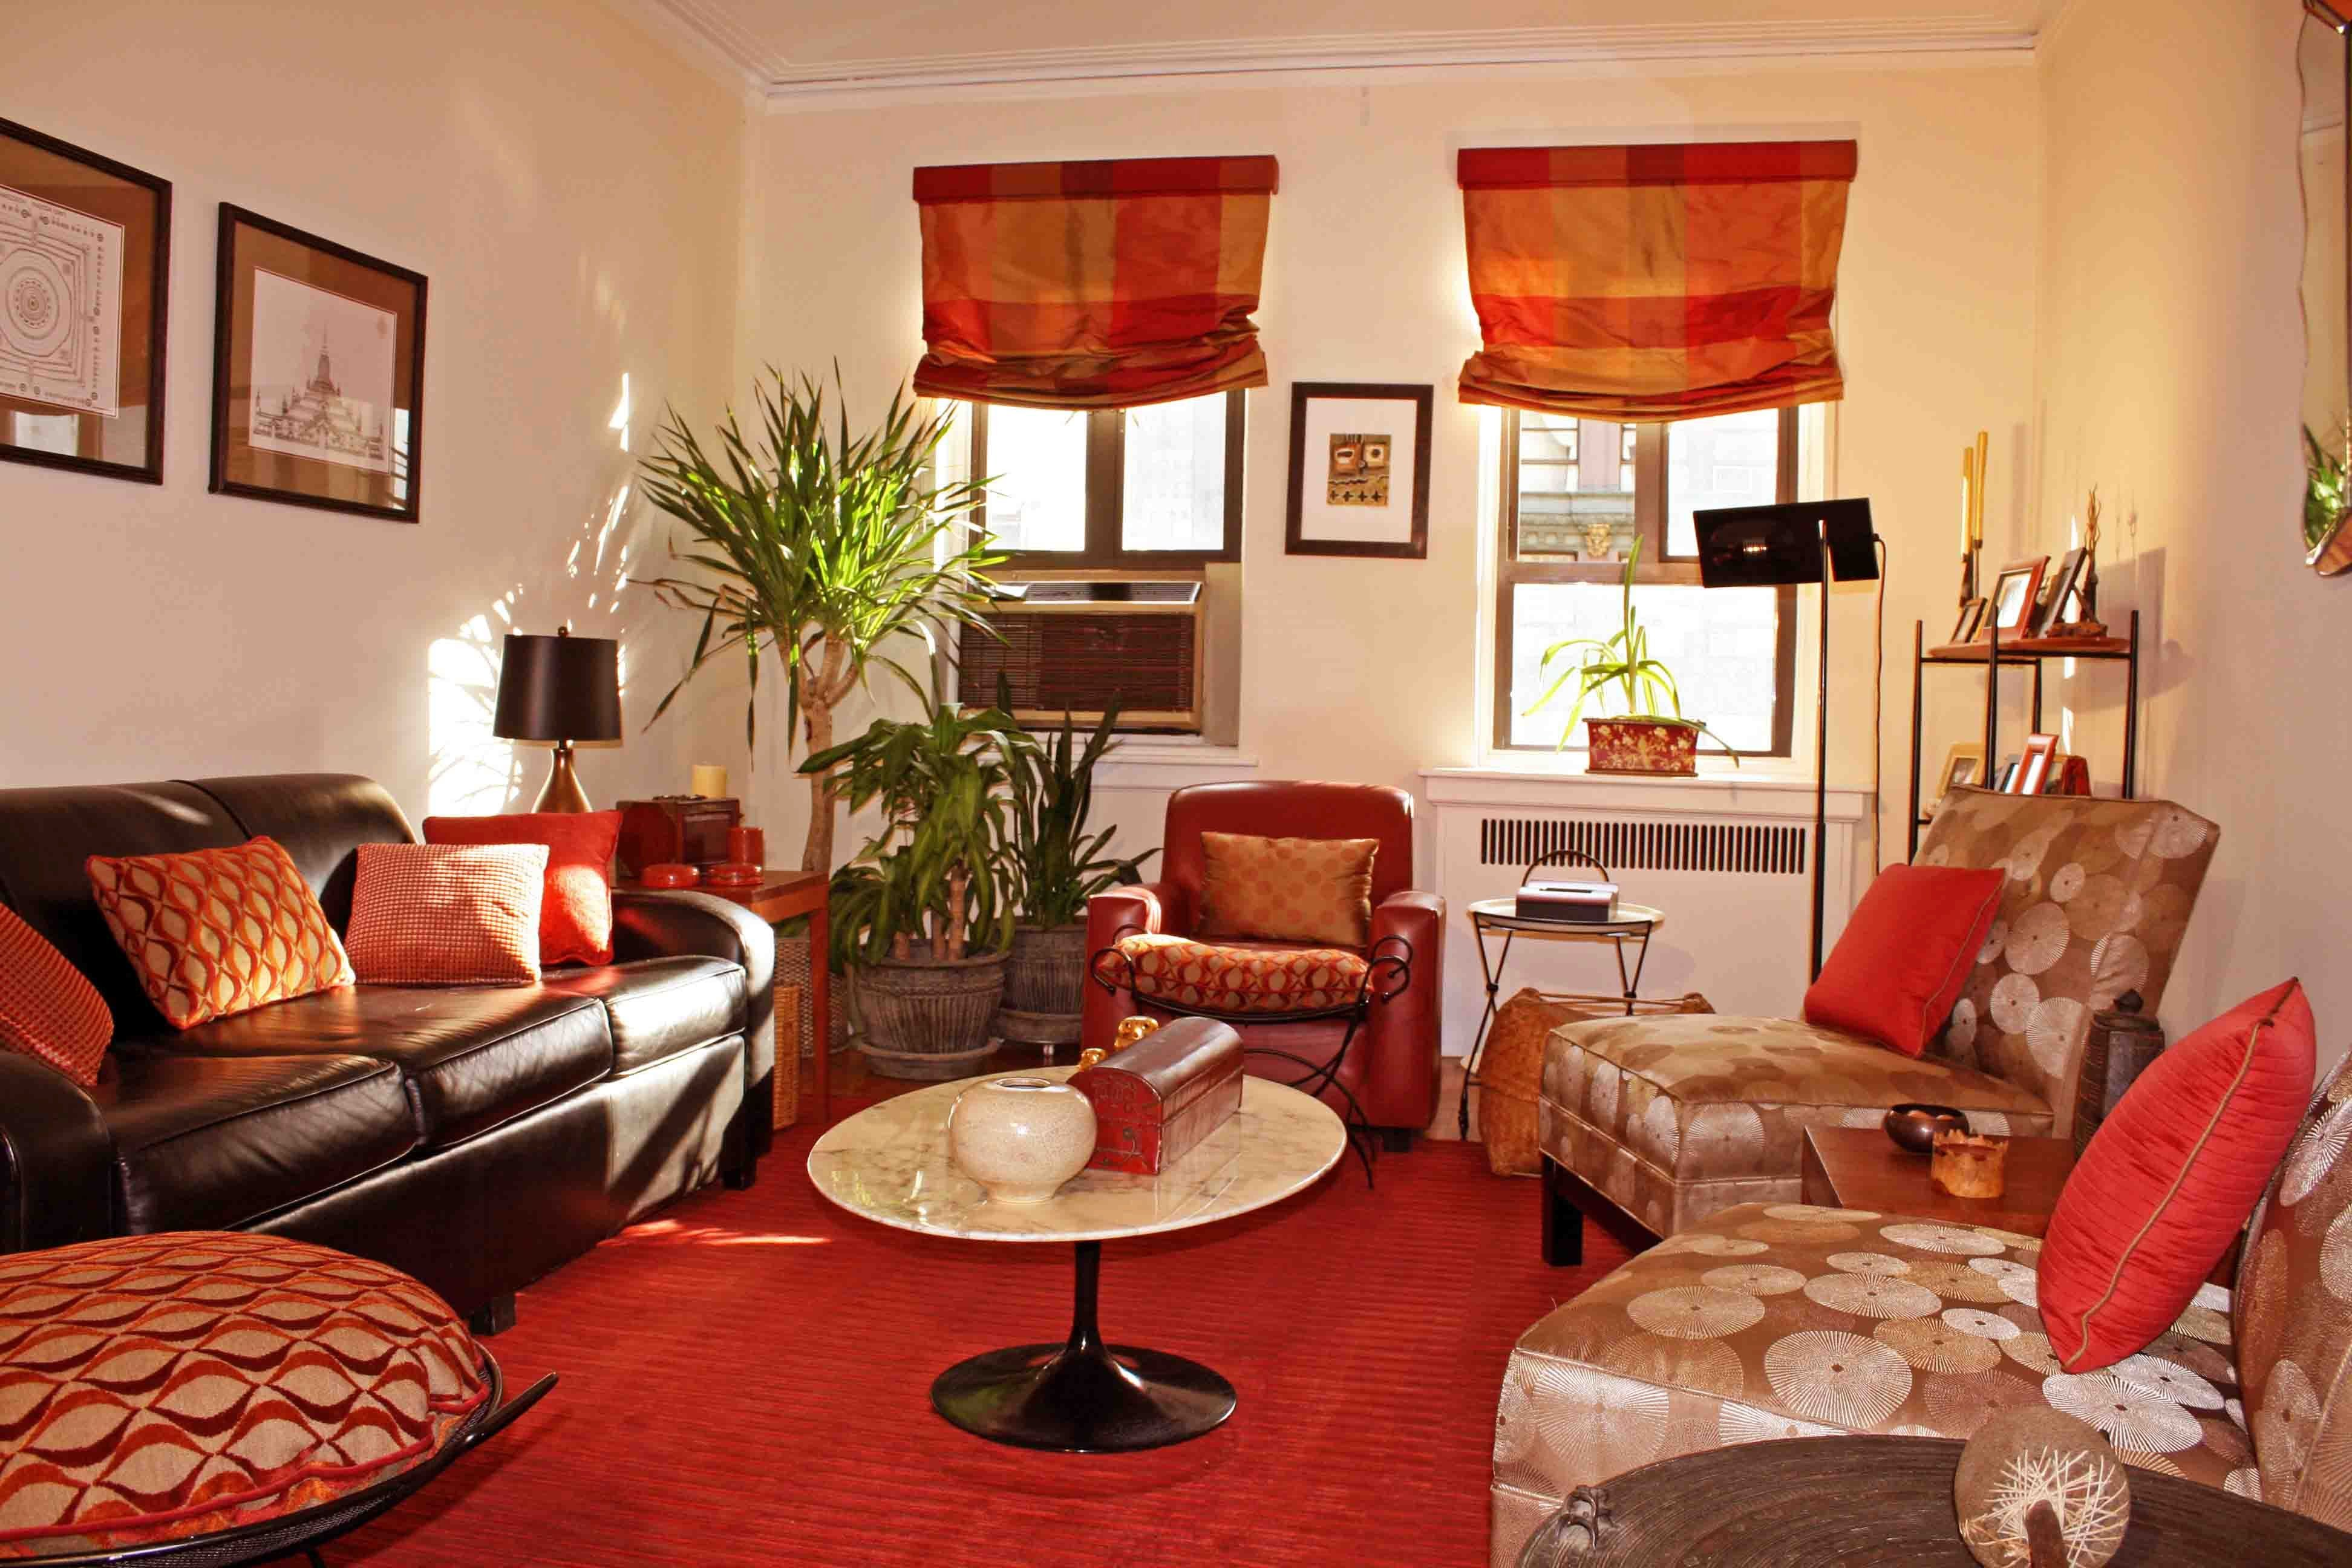 Fascinating Small Living Room Design Ideas With Red Rugs Laminate